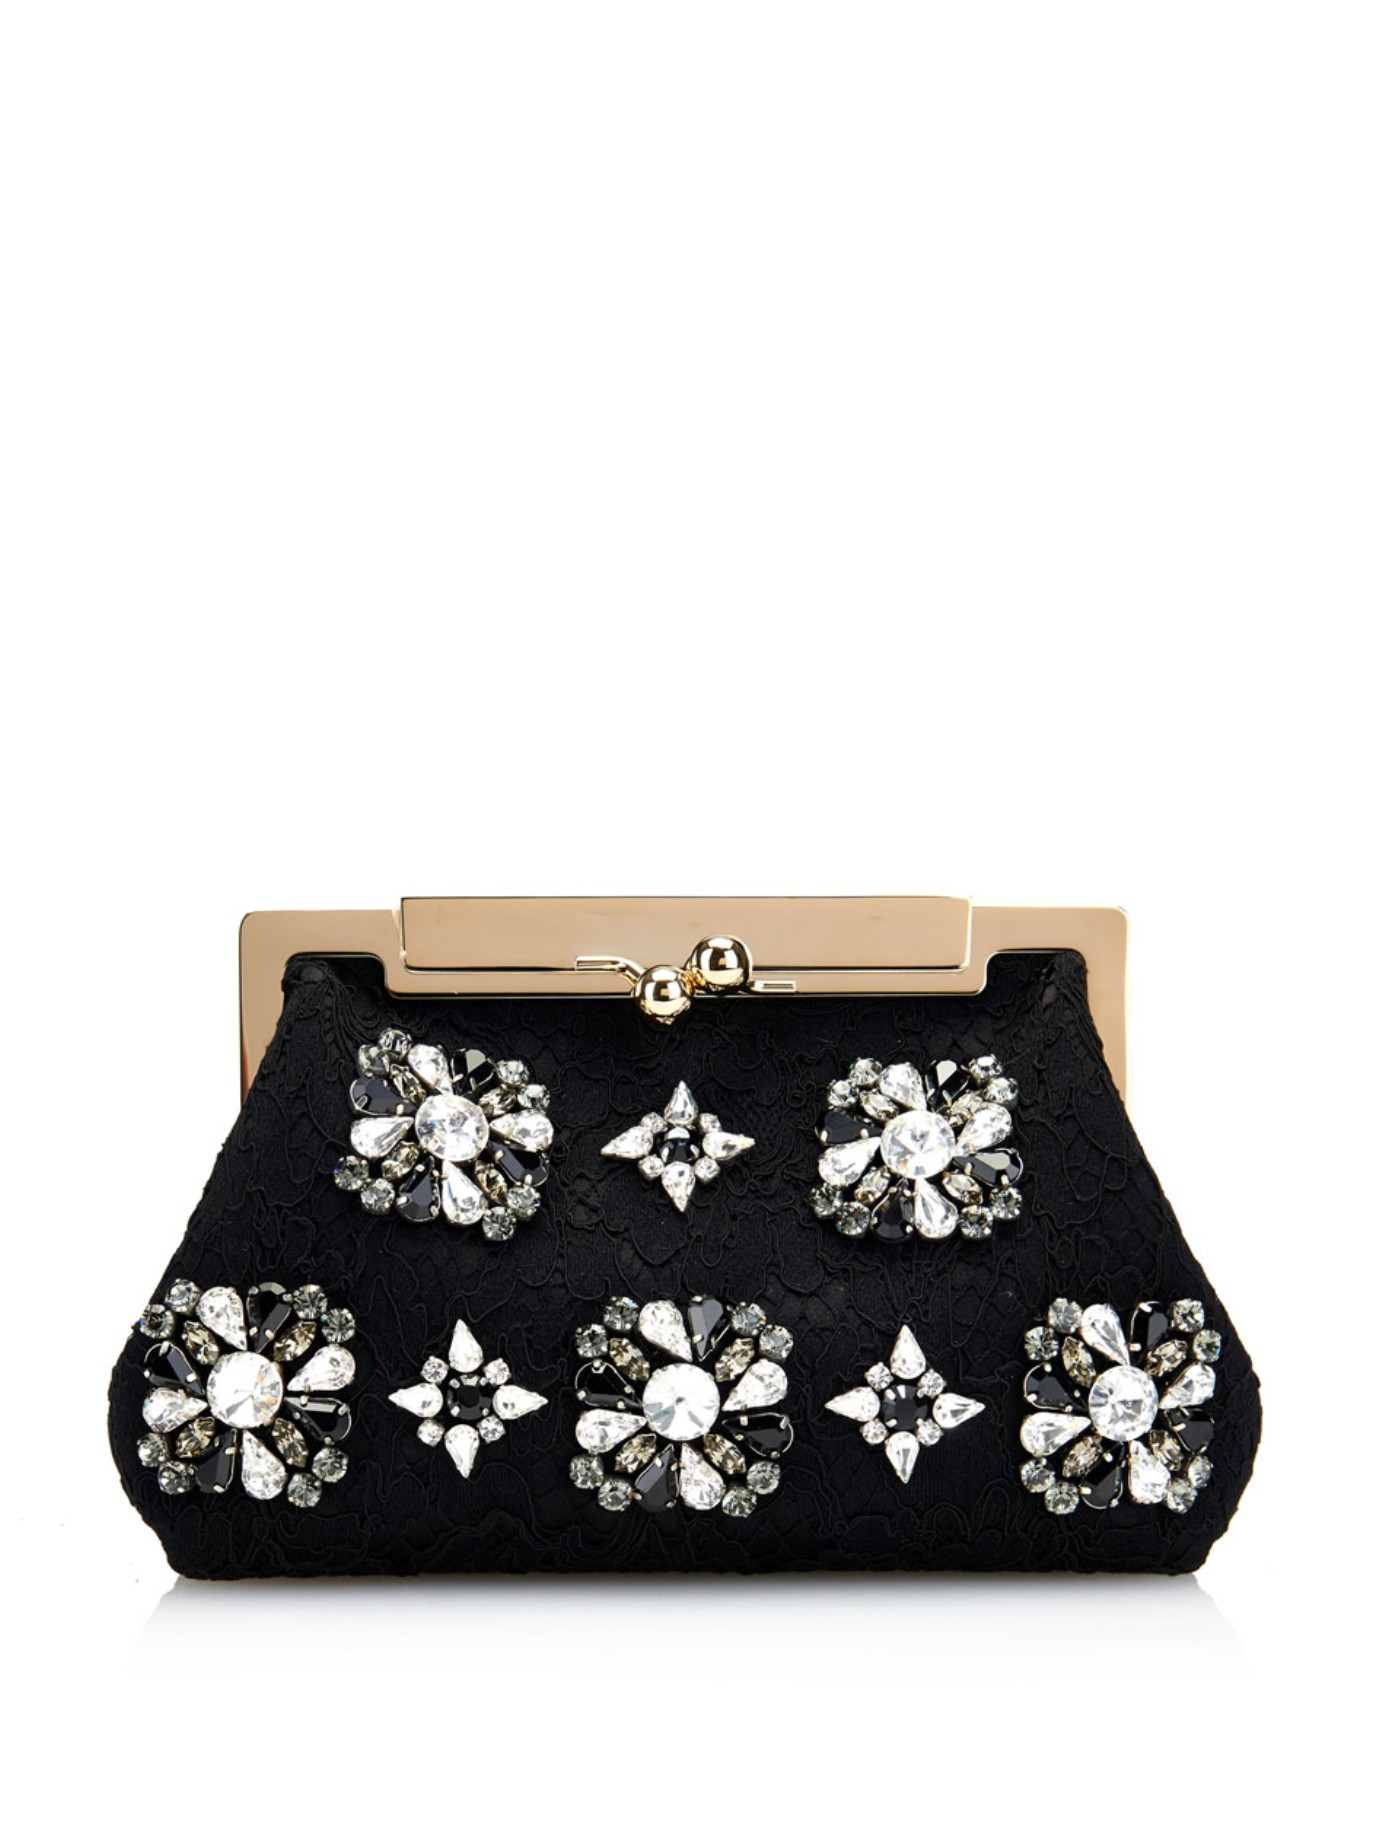 Lyst Dolce Gabbana Sara Lace And Crystal Evening Bag In Black. Black Lace  Evening Purse Best Image Ccdbb 20801b8e4ae46